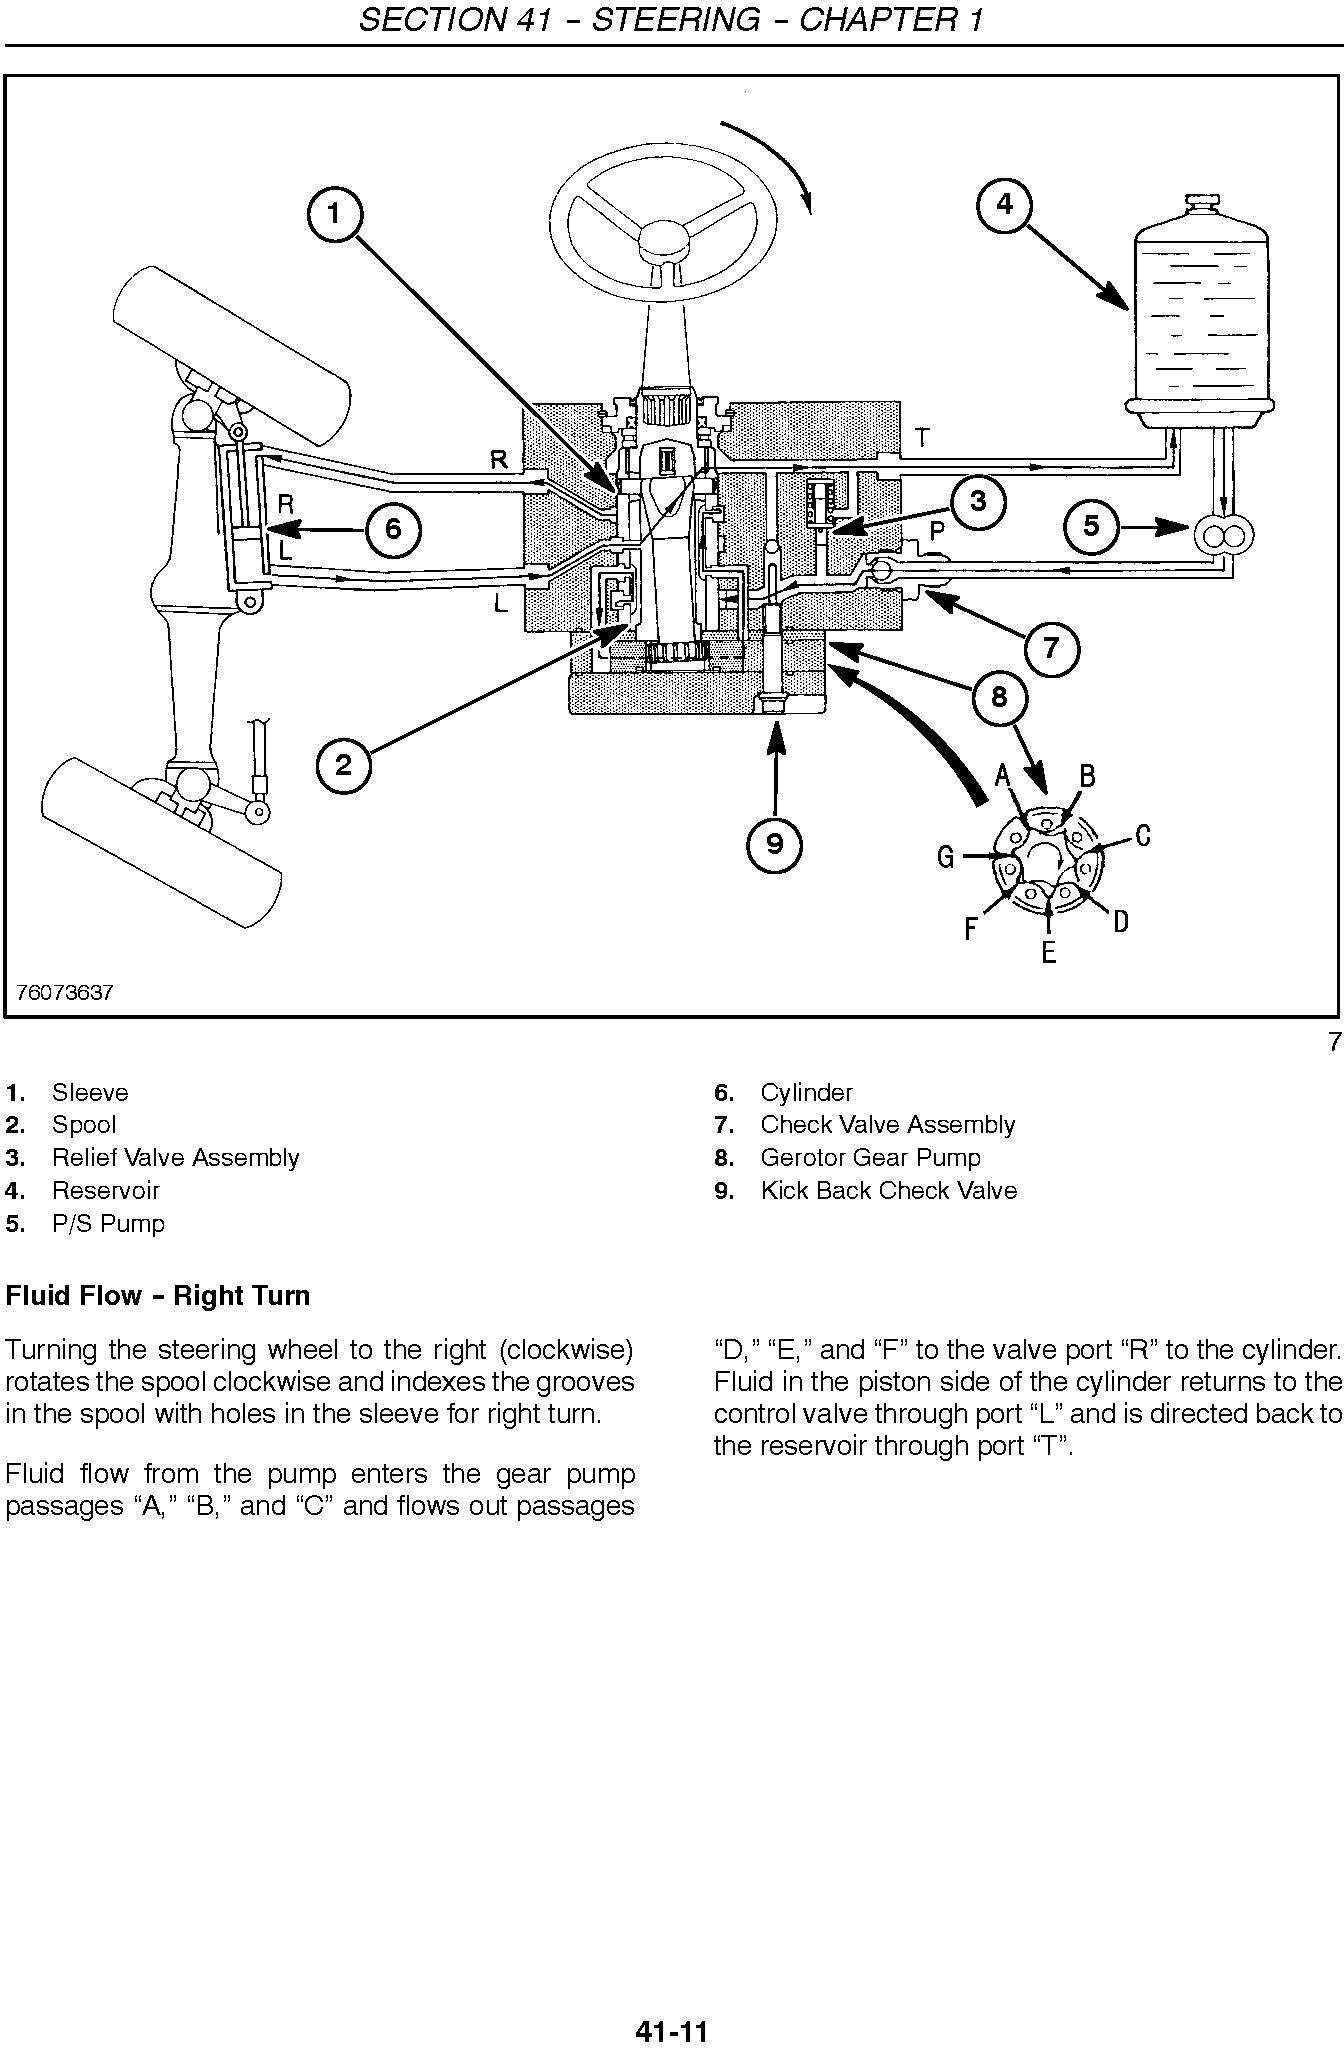 New Holland Boomer 4055, 4060 Tractor Service Manual - 3